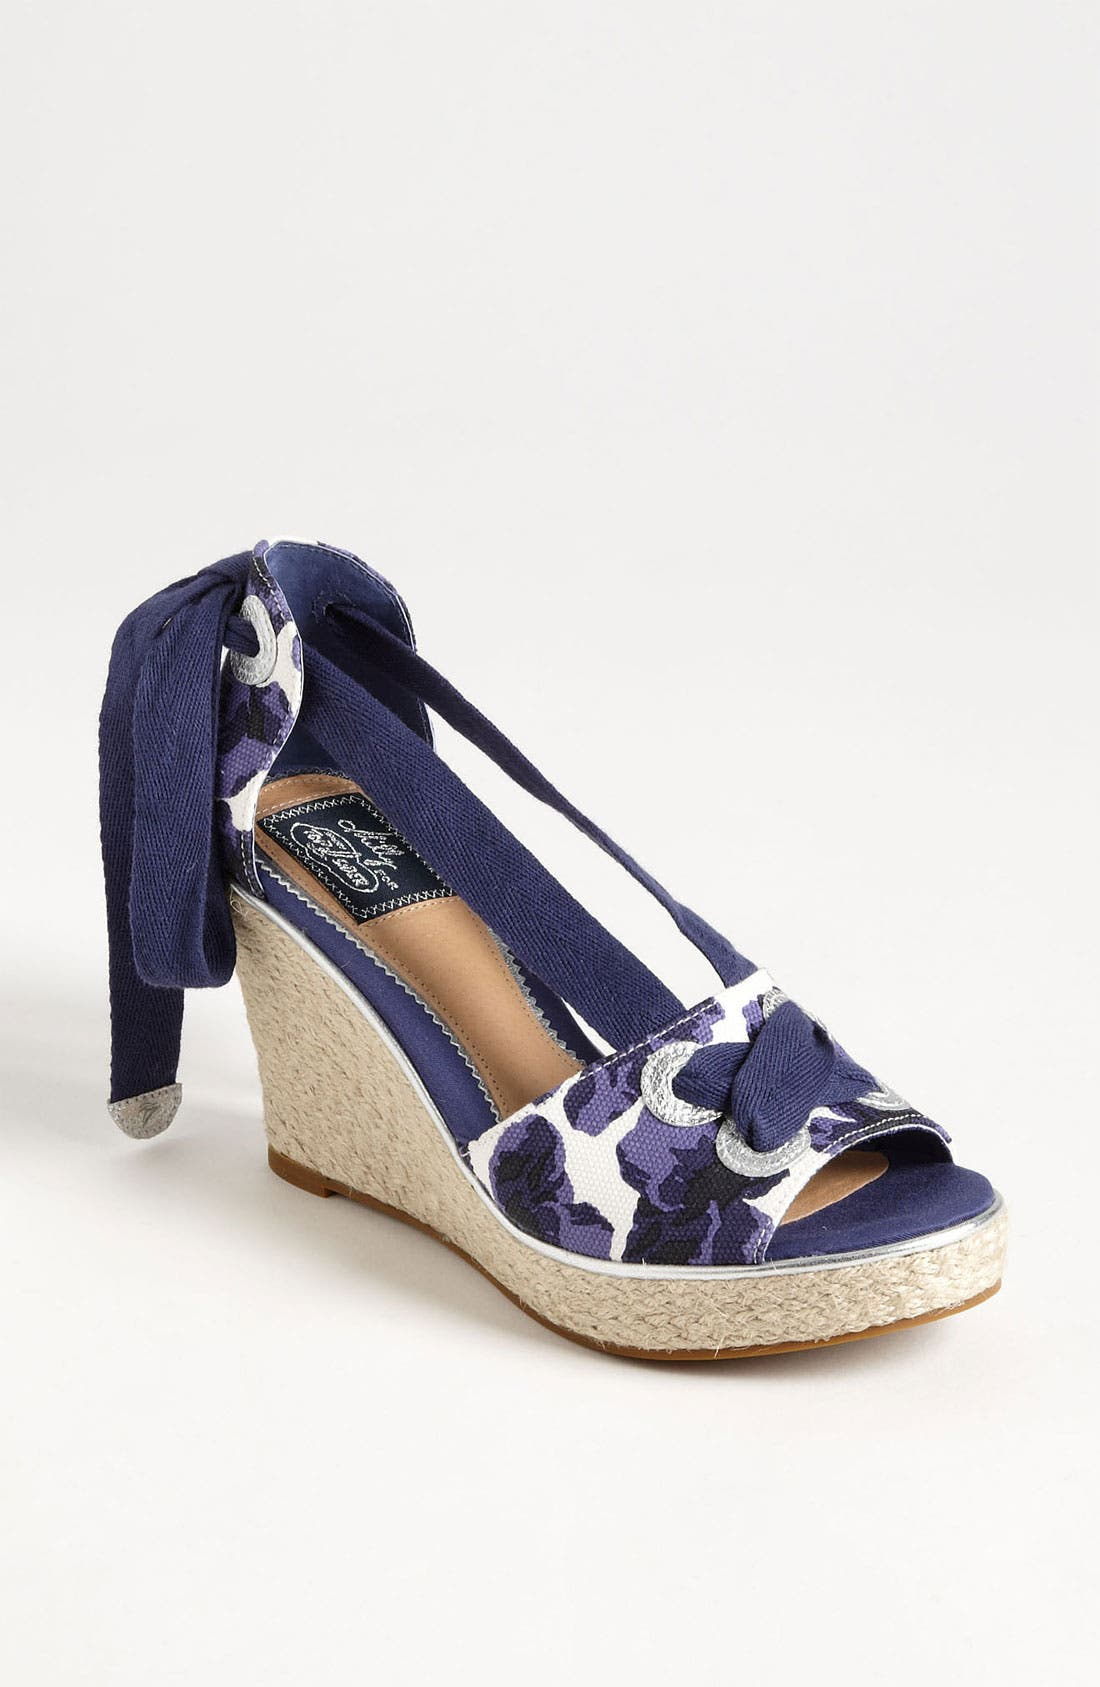 Alternate Image 1 Selected - Milly for Sperry Top-Sider® 'Palm Beach' Wedge